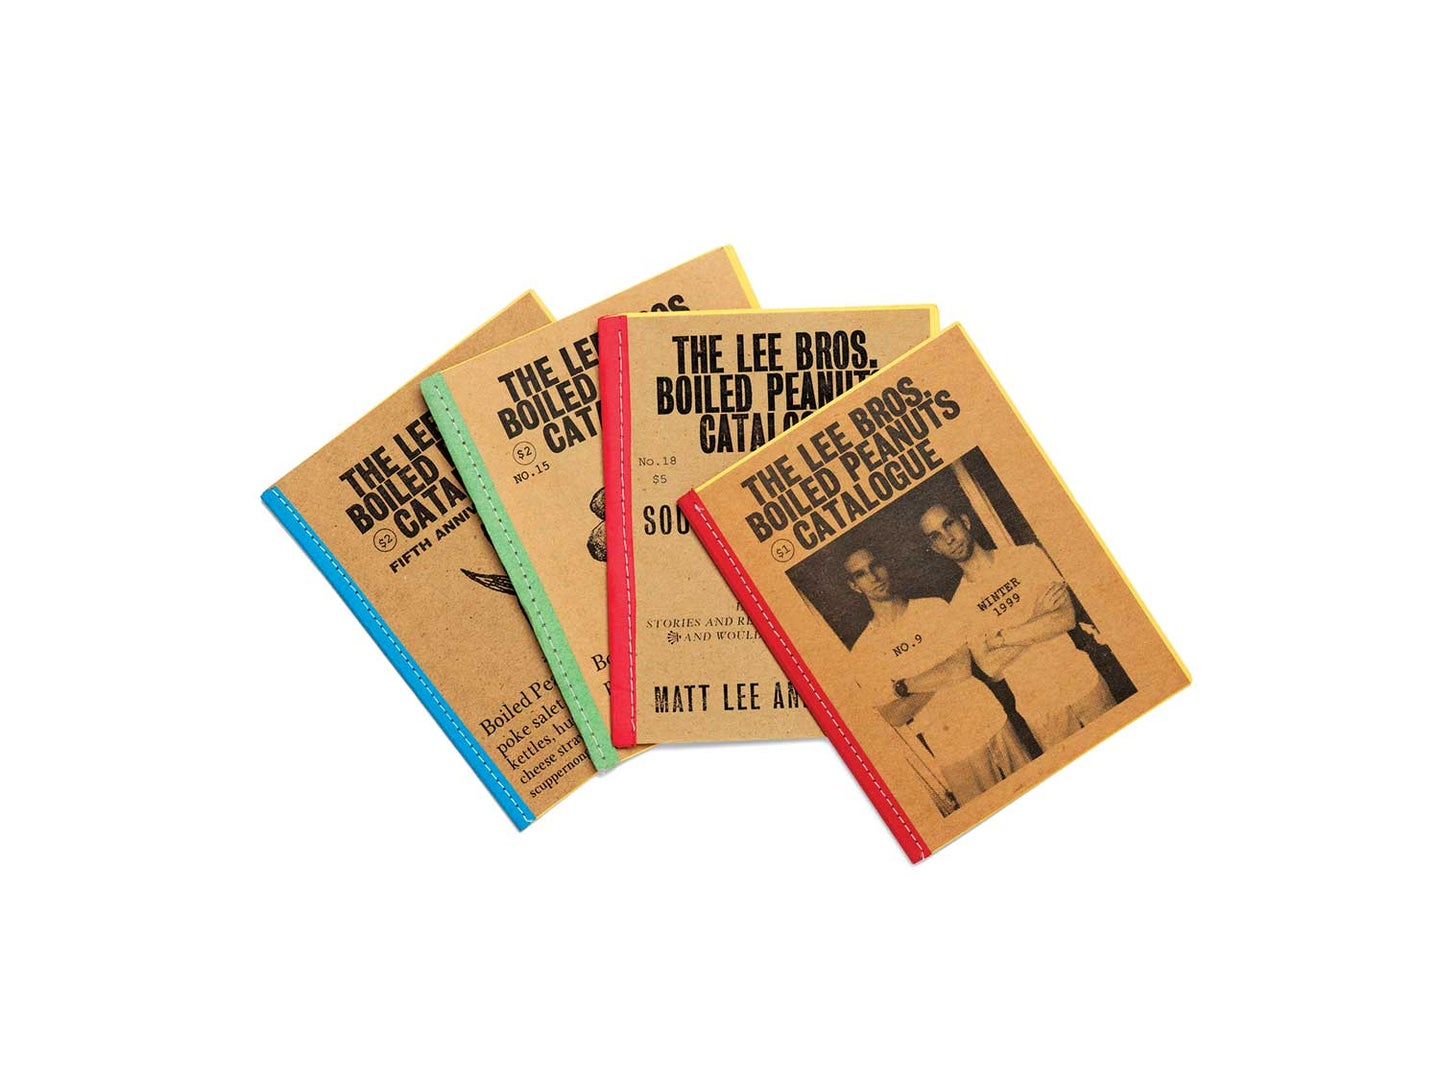 The Lee Brothers Boiled Peanuts Catalogue